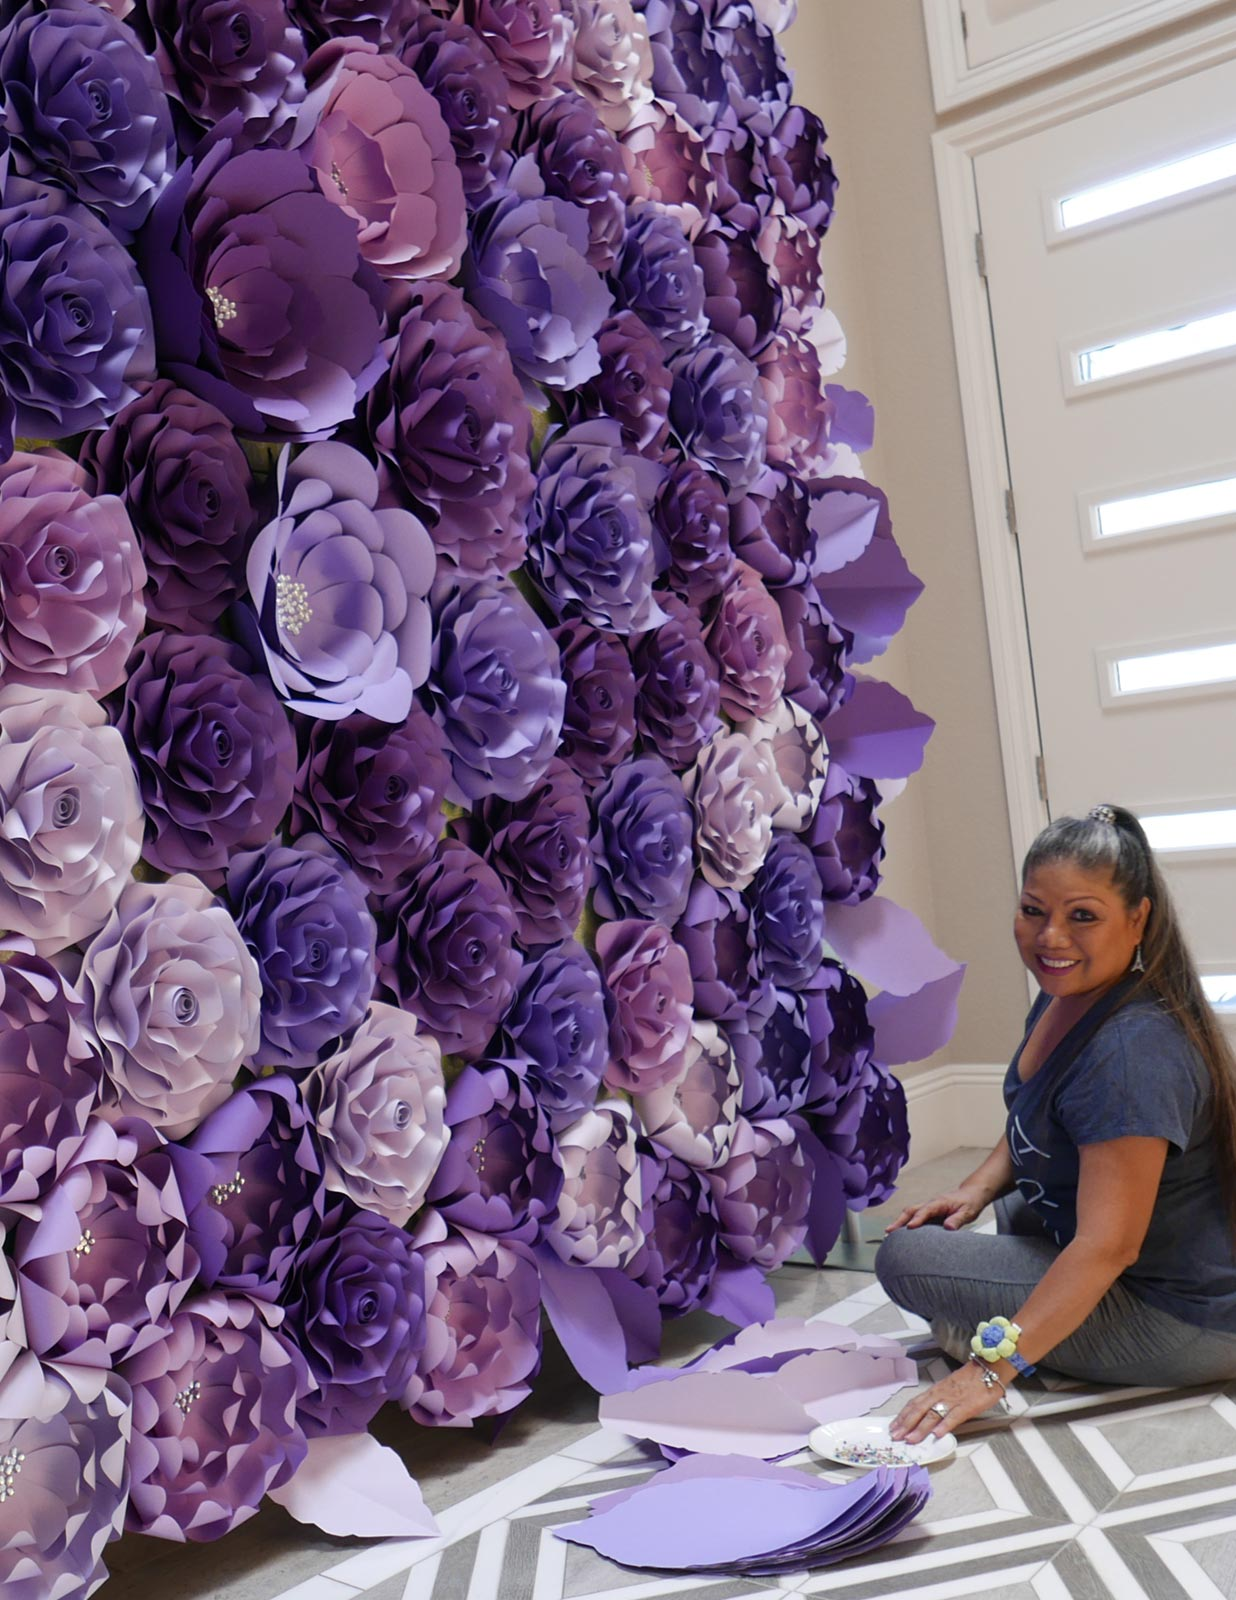 Carolines Paper Blooms Las Vegas Paper Flower Wall Backdrops And Art 03 A Catered Affair Las Vegas